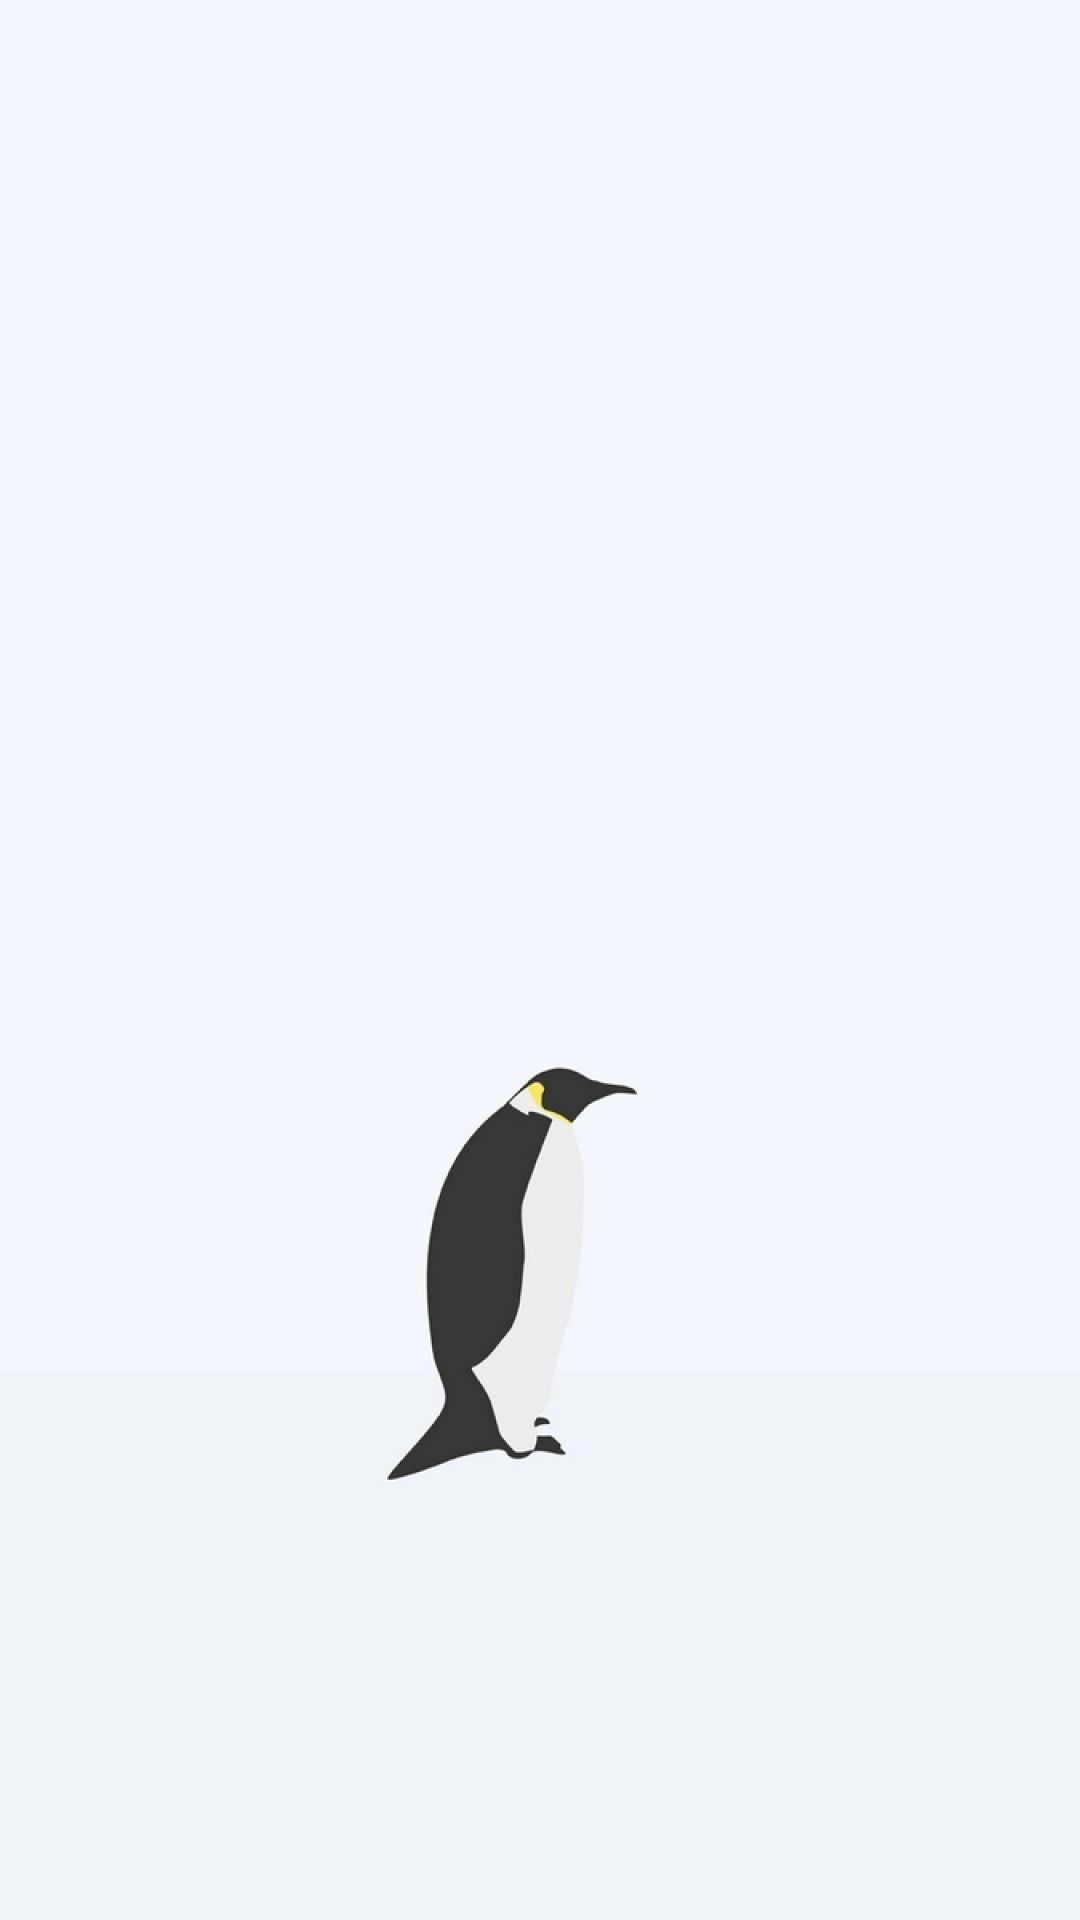 Penguin Check Out More Minimal Animals Wallpapers For